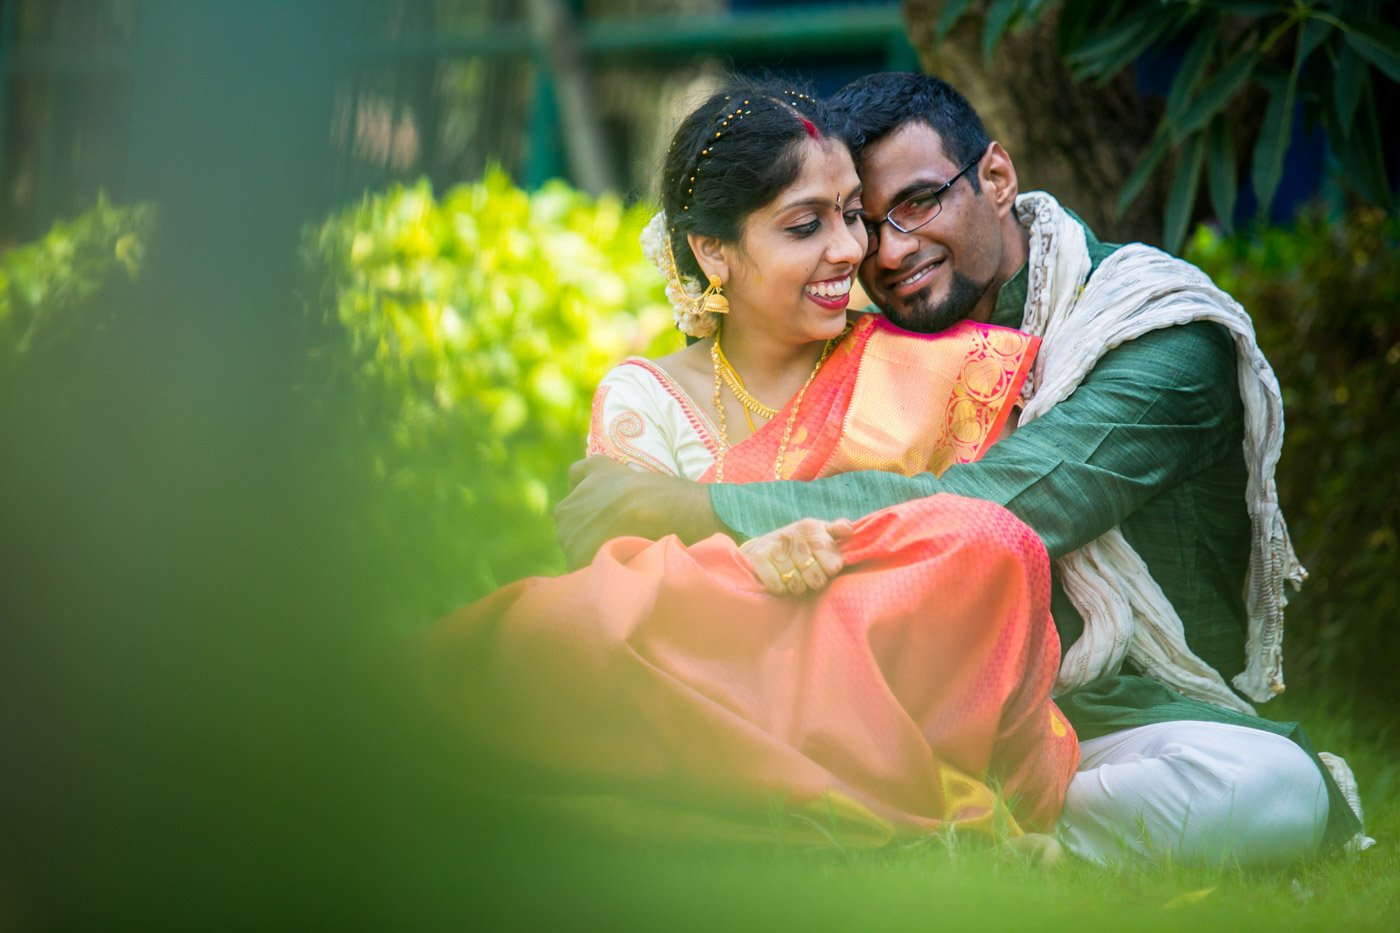 Best_fun_outdoor_Wedding_Photographer_Bangalore-85.jpg